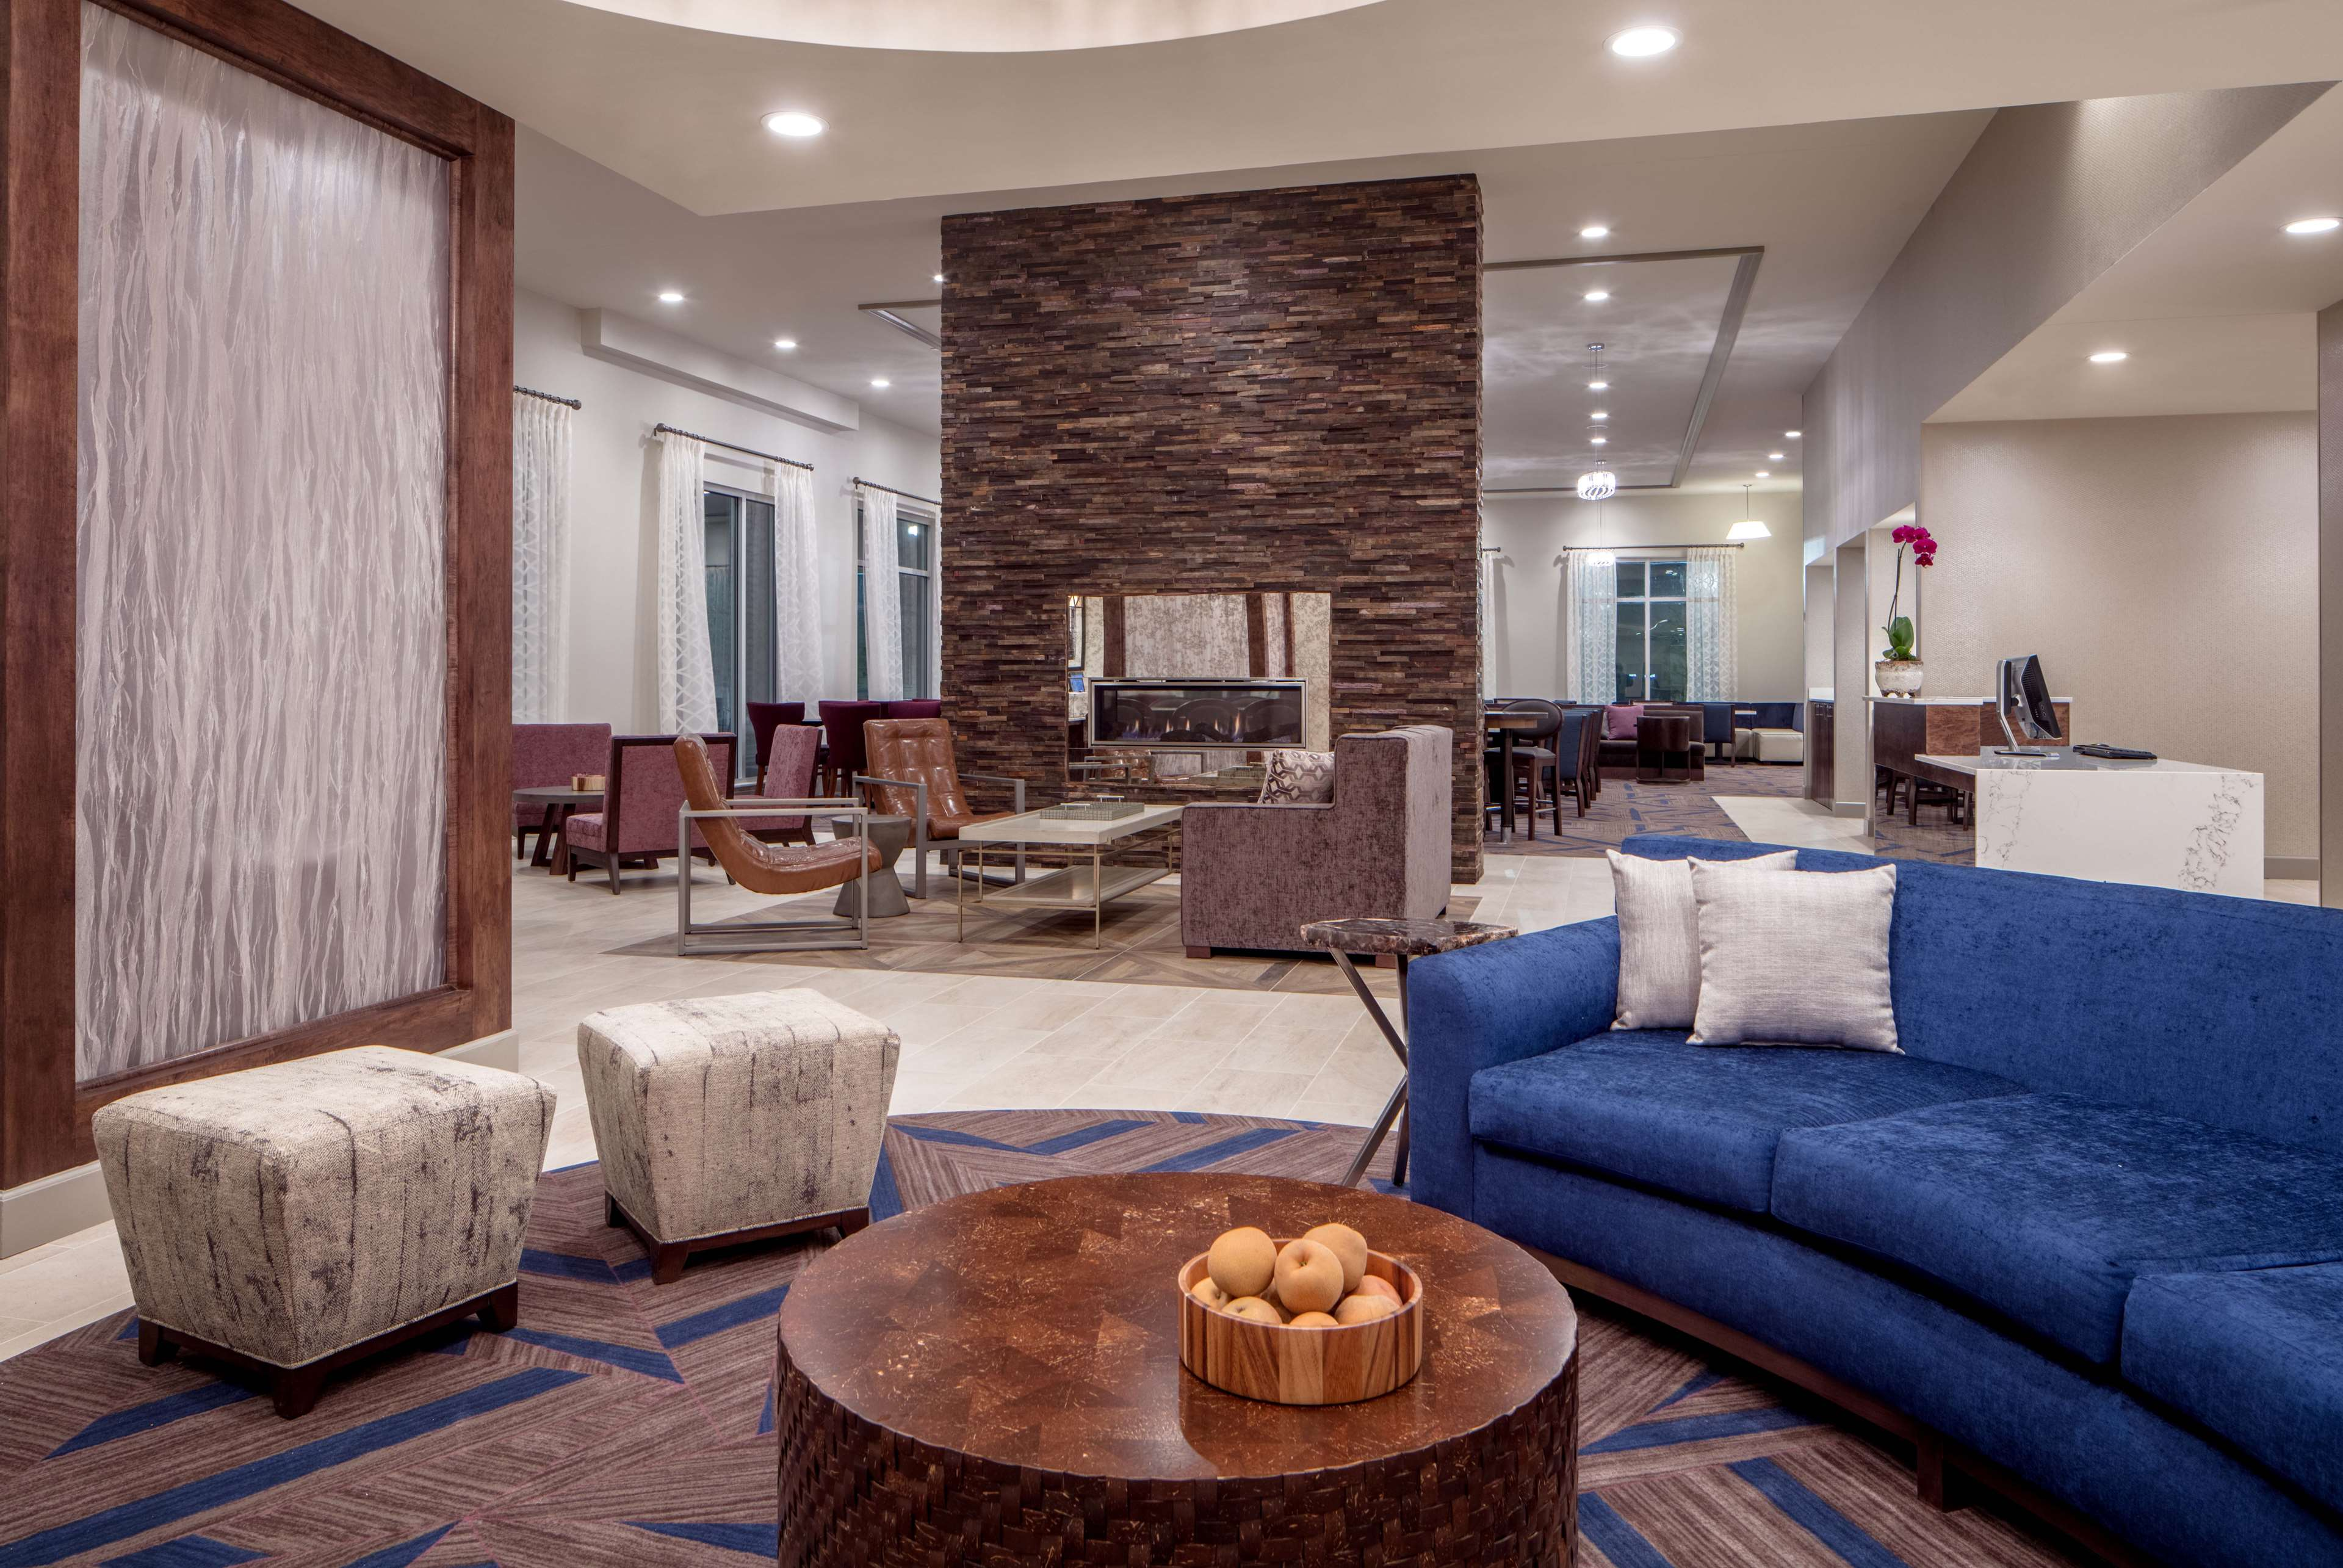 Homewood Suites by Hilton New Orleans French Quarter image 7